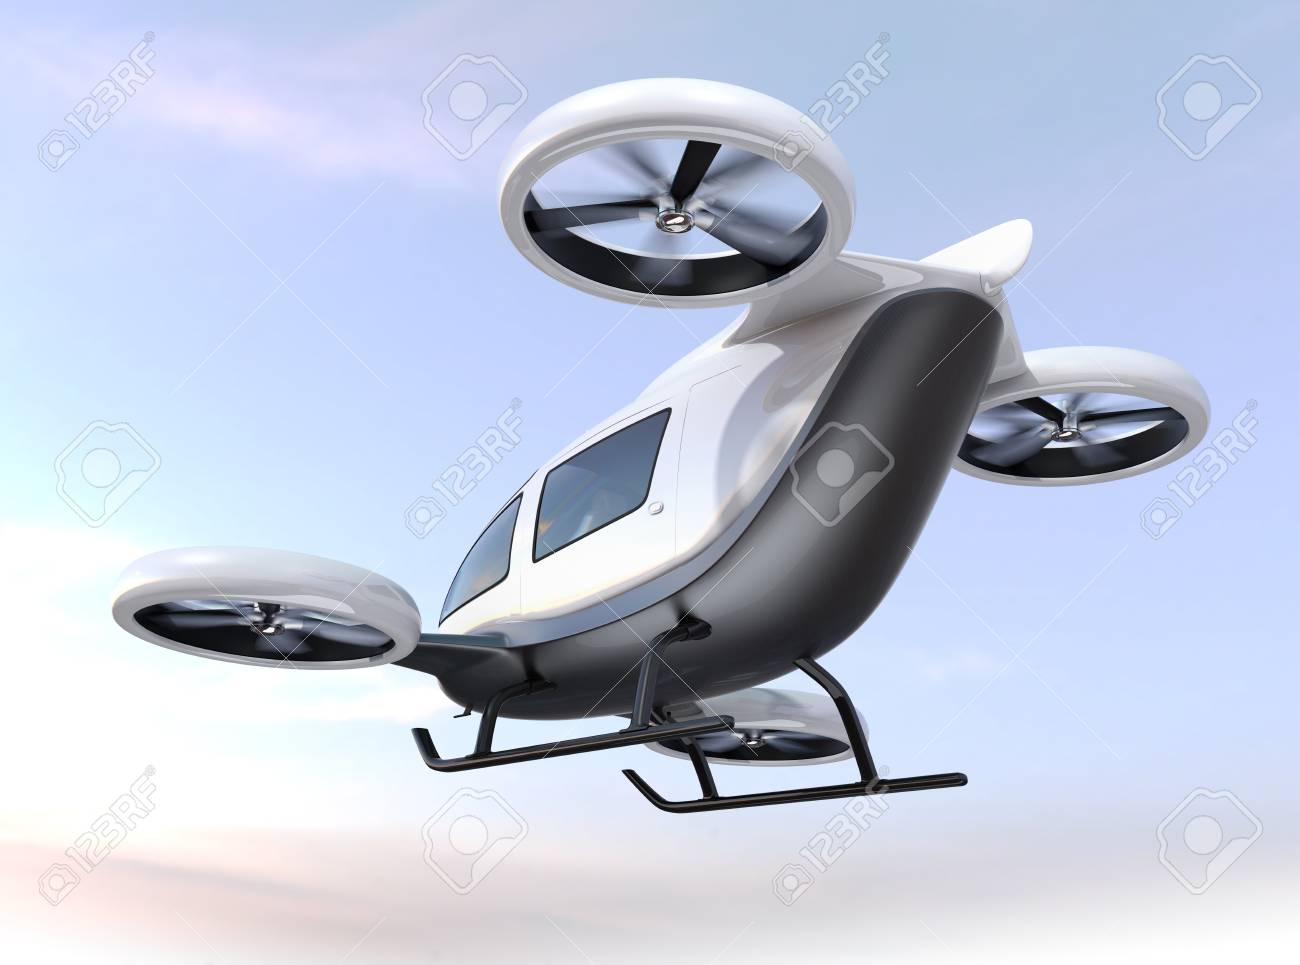 White self-driving passenger drone flying in the sky. 3D rendering image. - 88292576